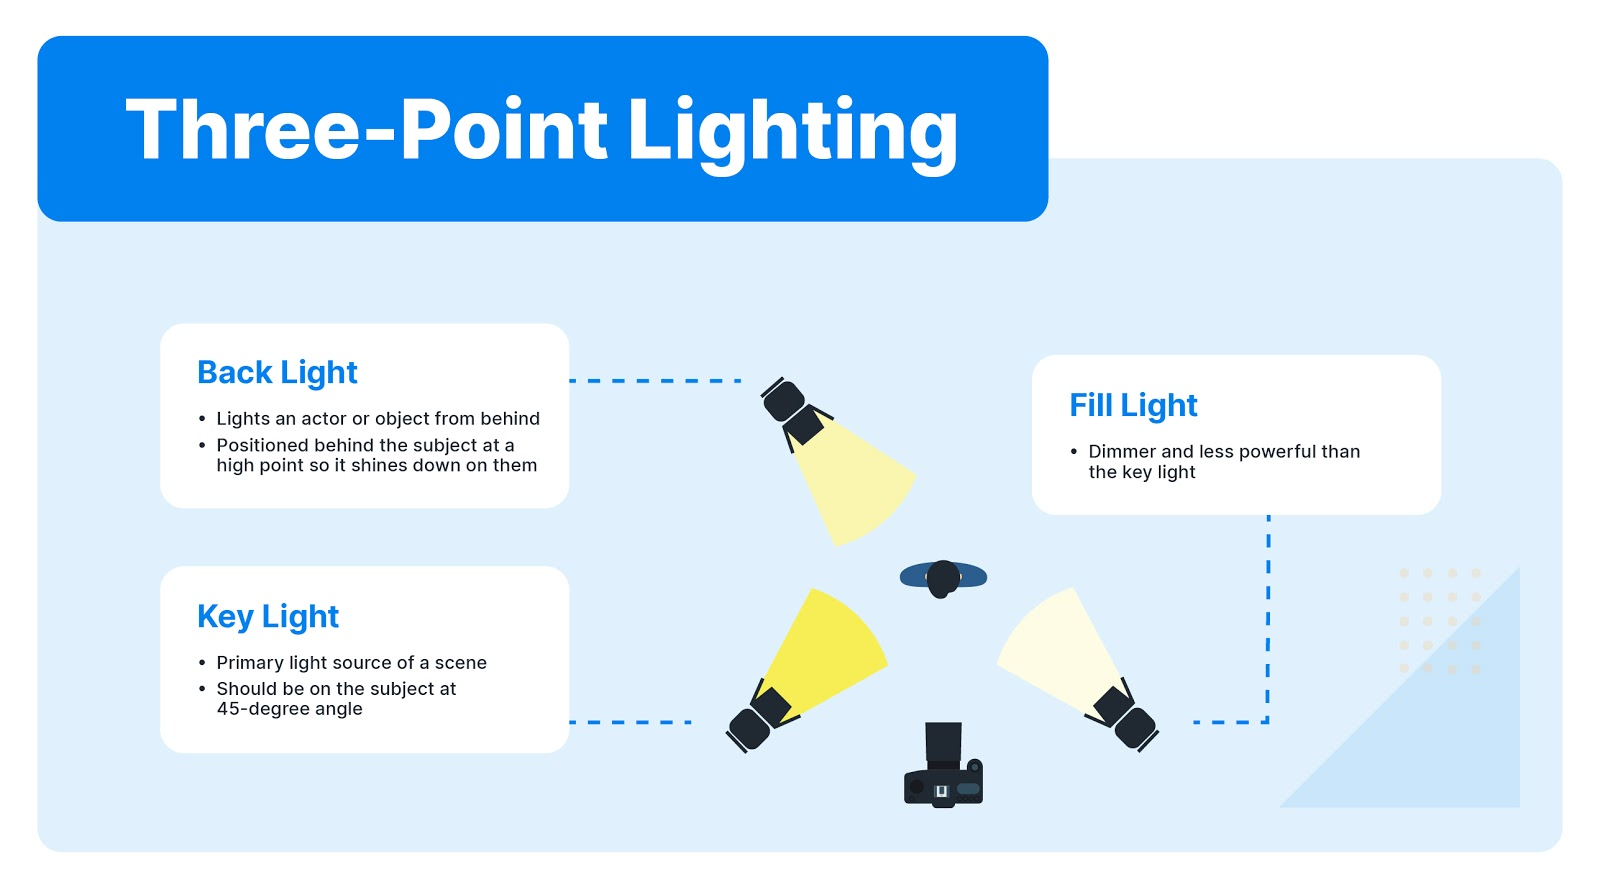 Three-point lighting system diagram for a home video studio